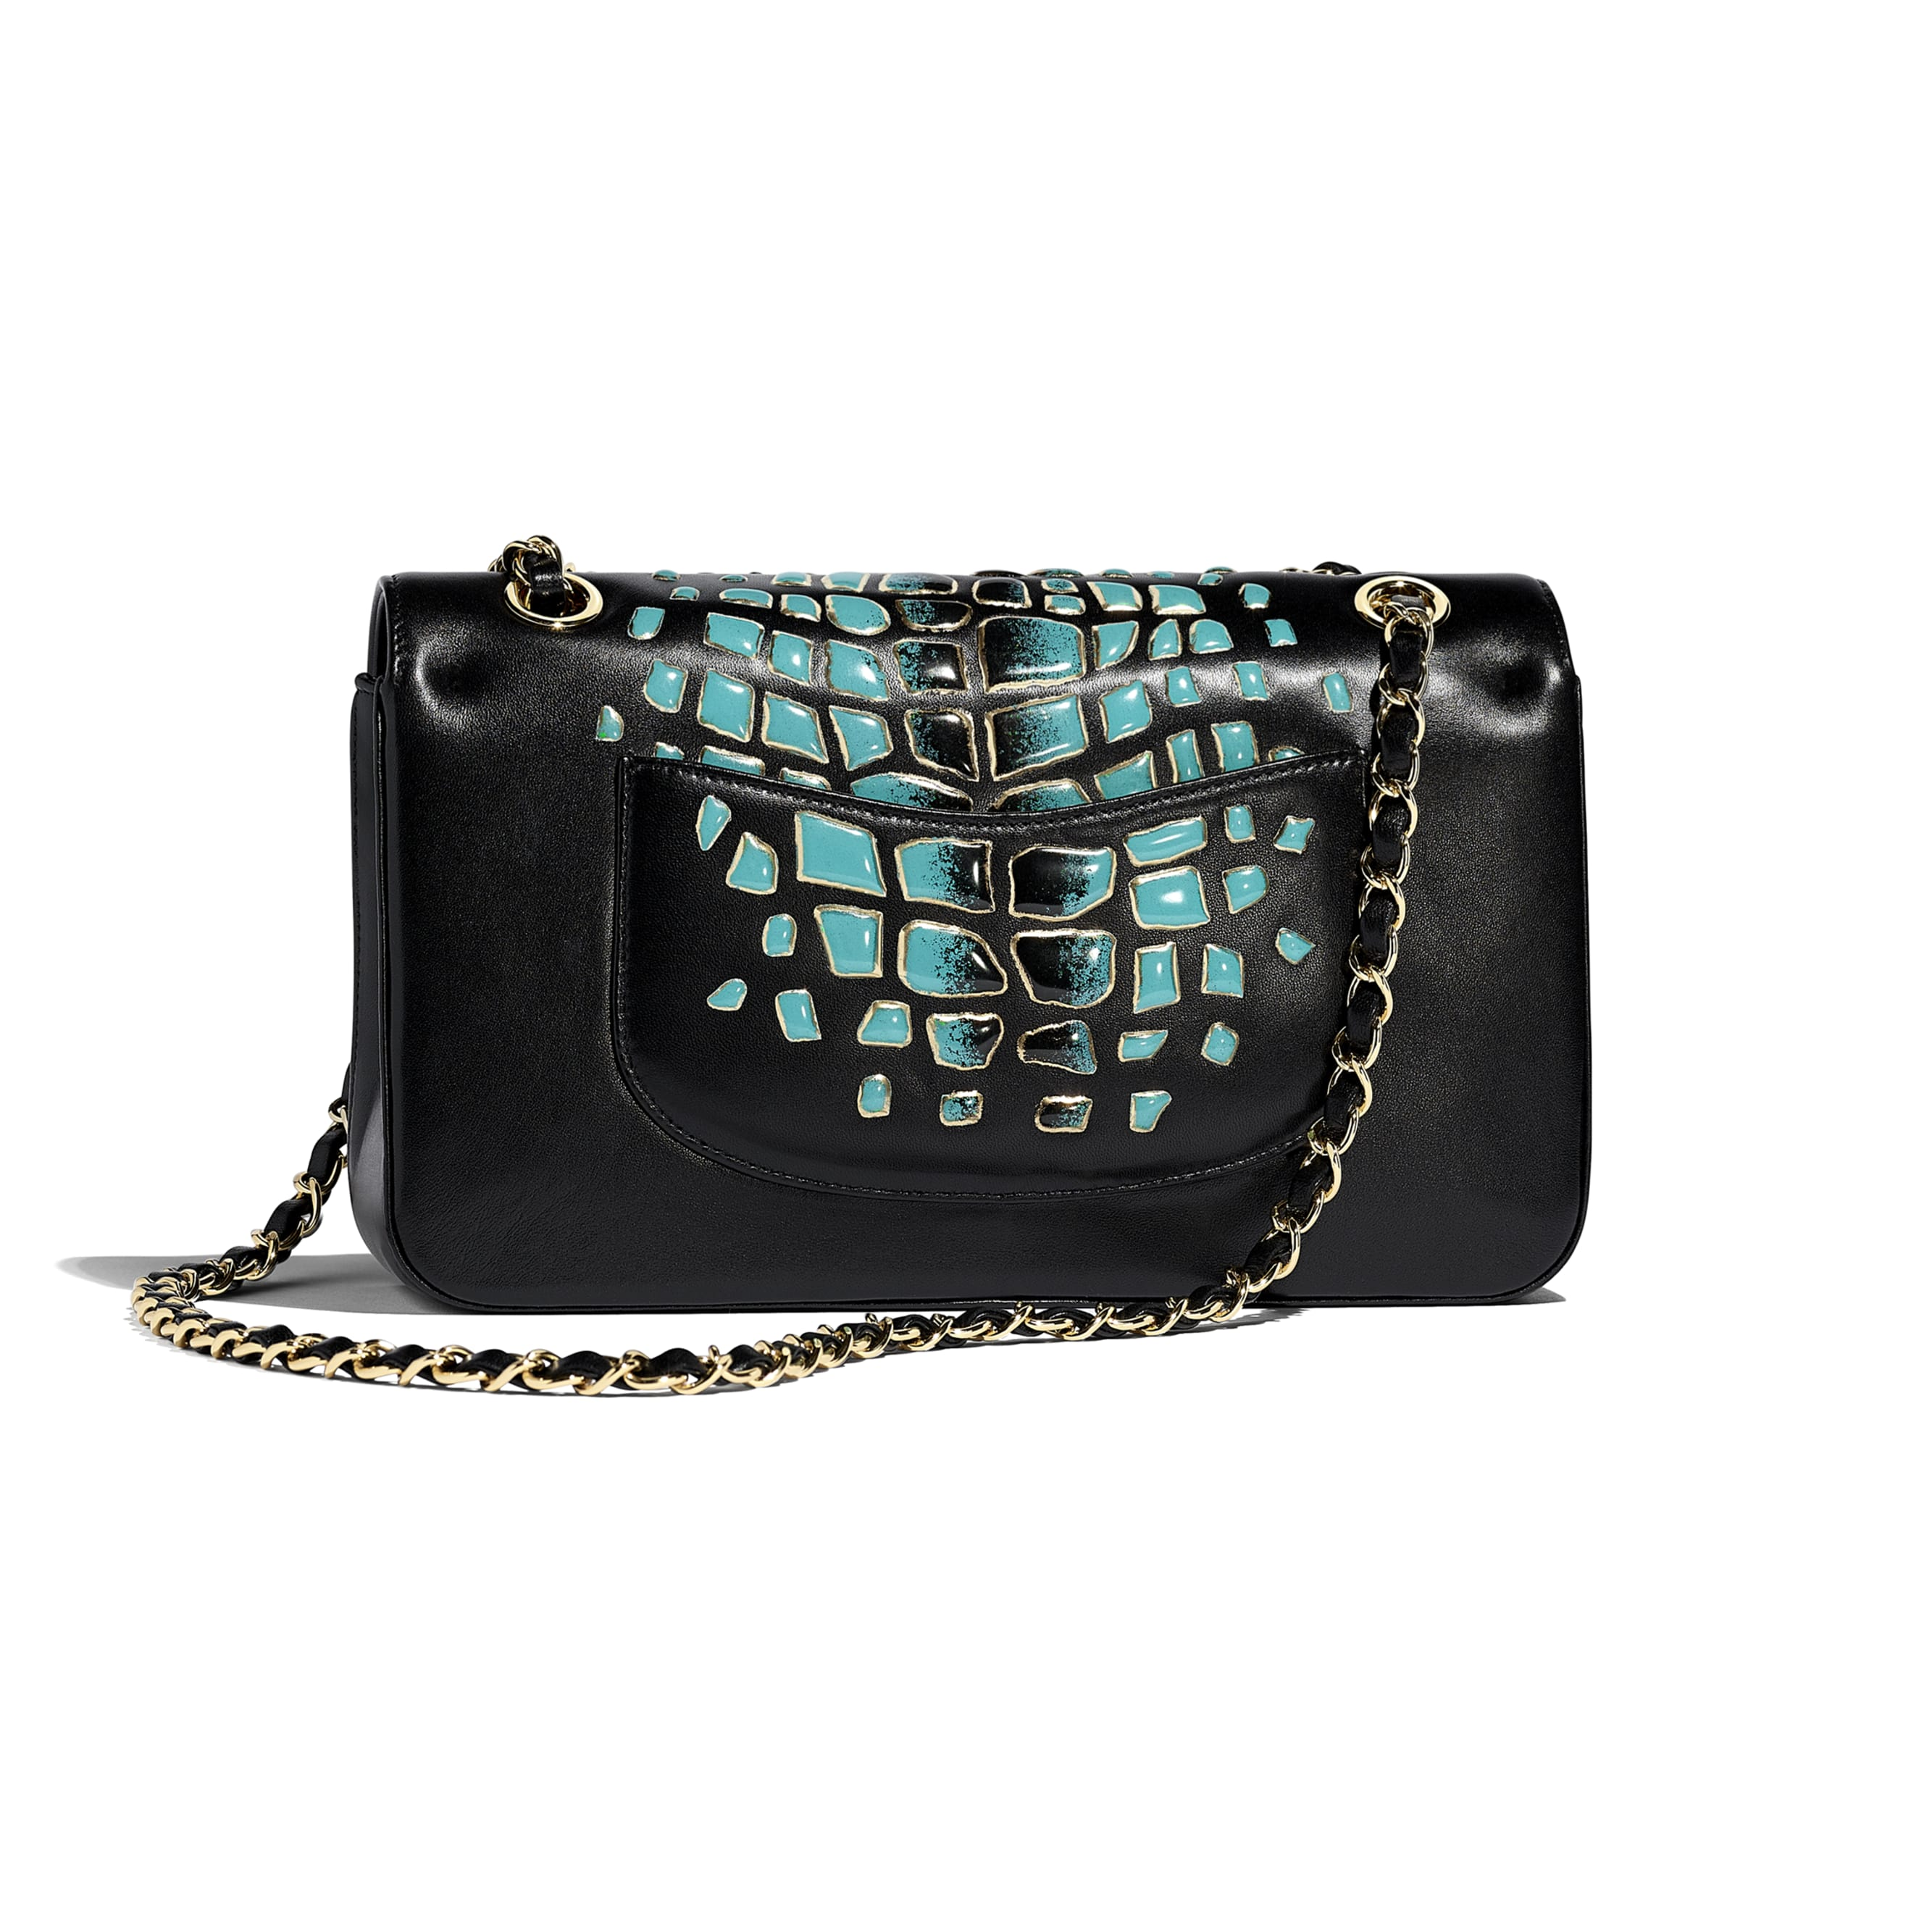 Classic Handbag - Turquoise & Black - Lambskin, Resin & Gold-Tone Metal - Alternative view - see standard sized version